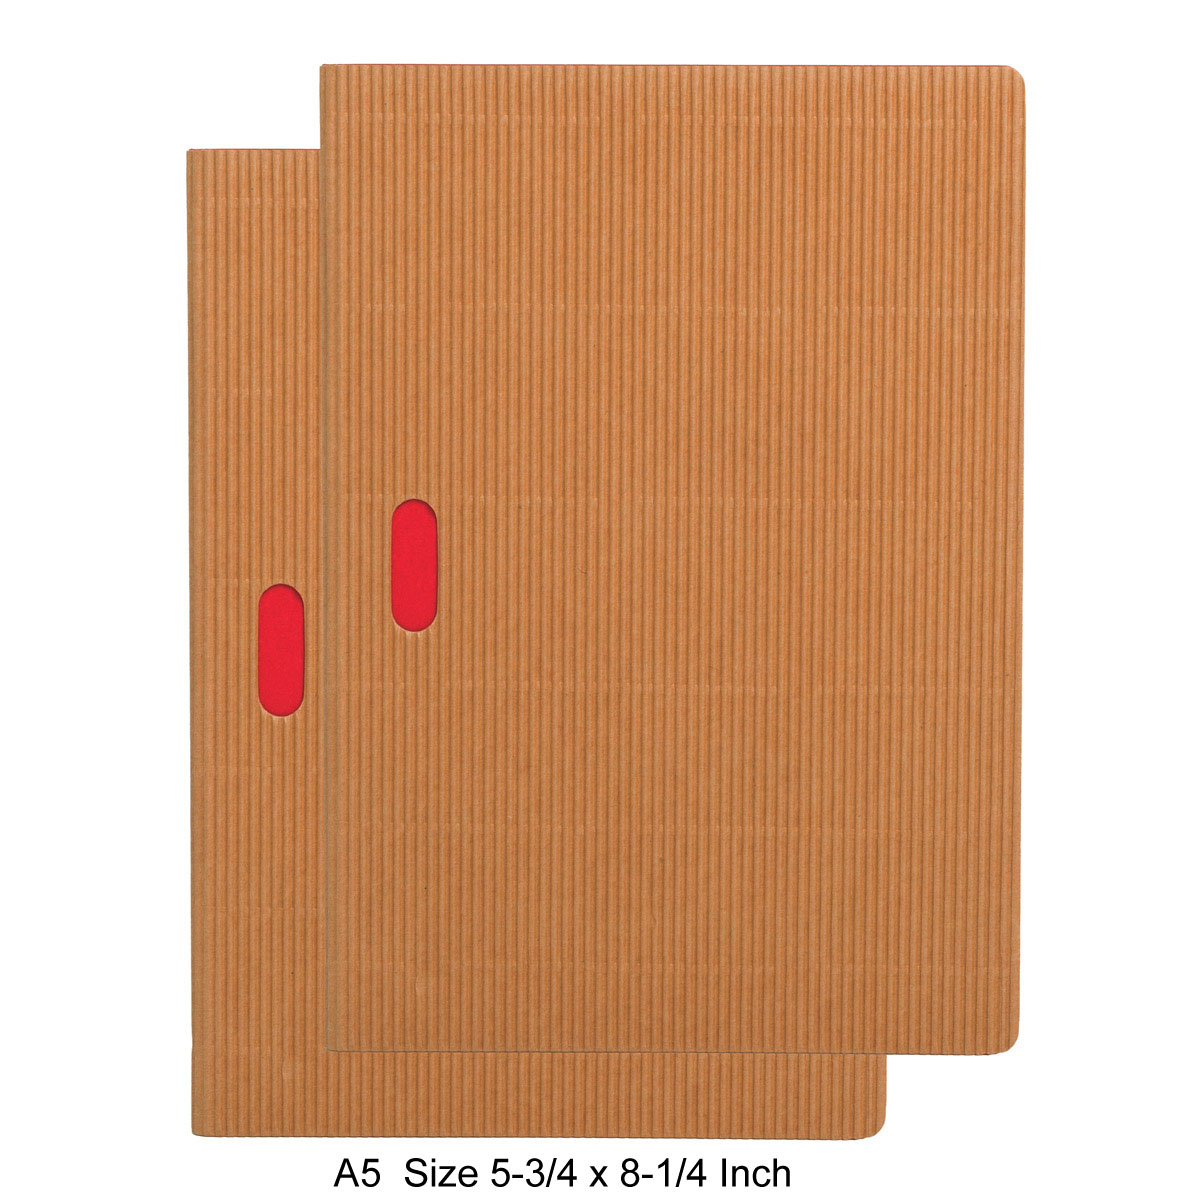 Paper-Oh Ondulo Cahier Notebook A5 Size Set of 2